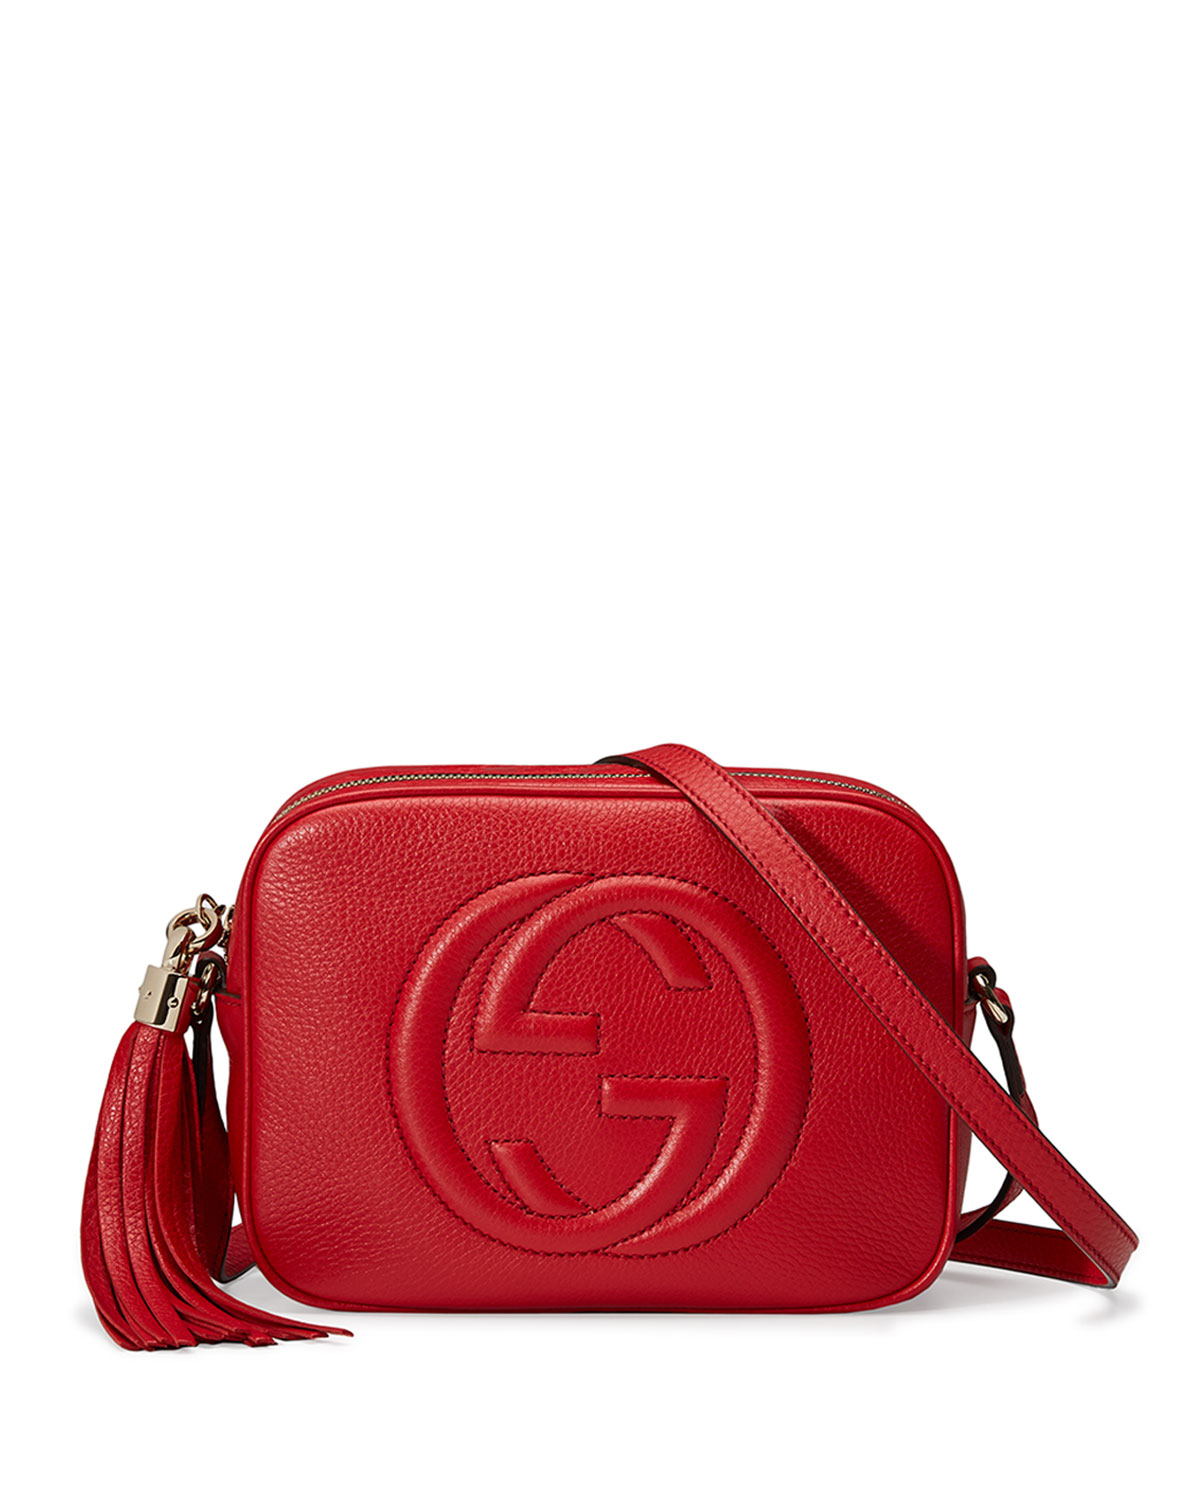 d258bd6a42b Gucci Soho Leather Disco Bag